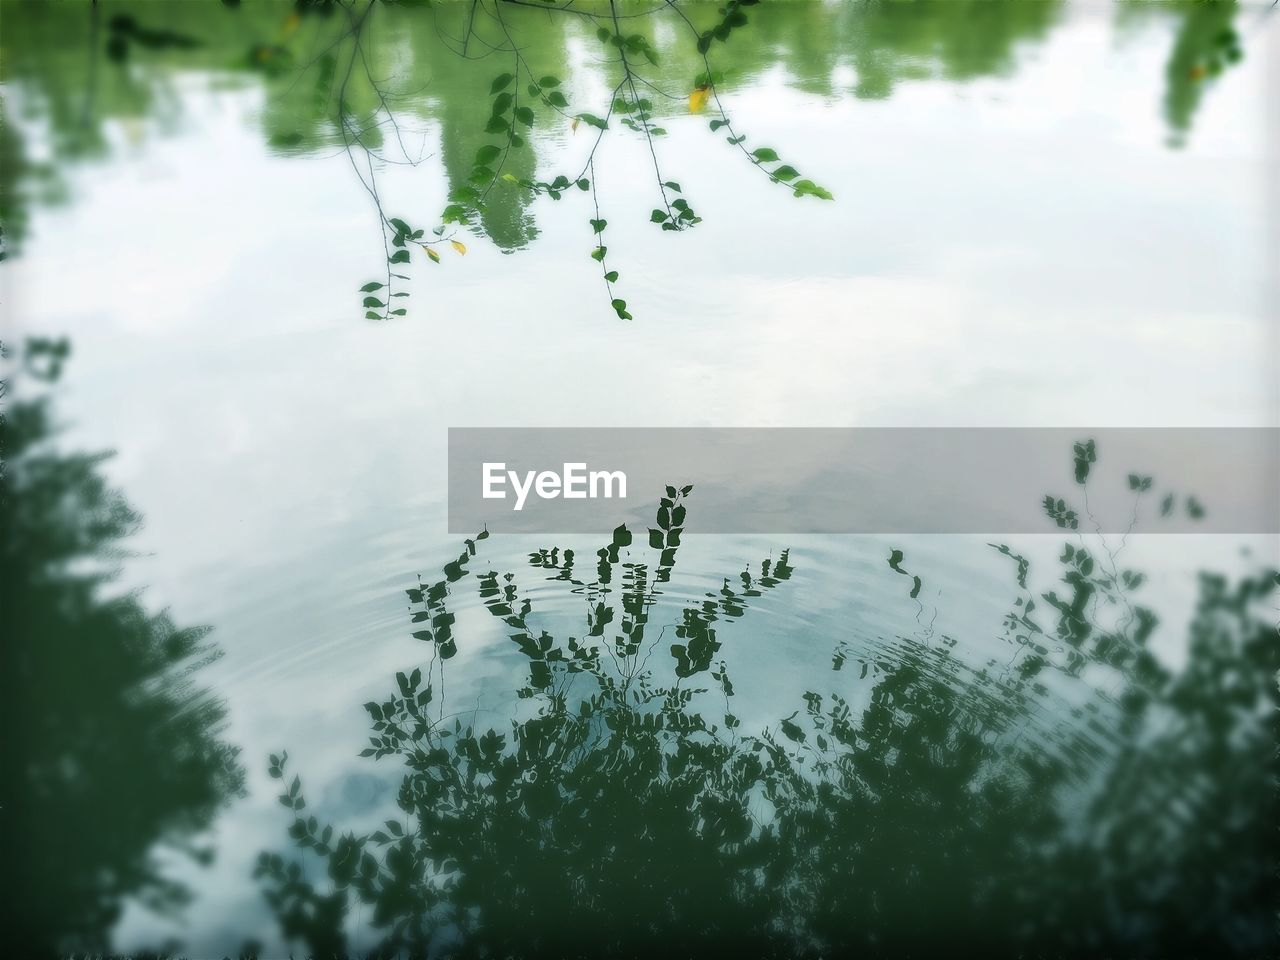 water, nature, reflection, no people, tree, beauty in nature, day, outdoors, lake, growth, tranquility, animals in the wild, plant, animal themes, sky, swimming, freshness, close-up